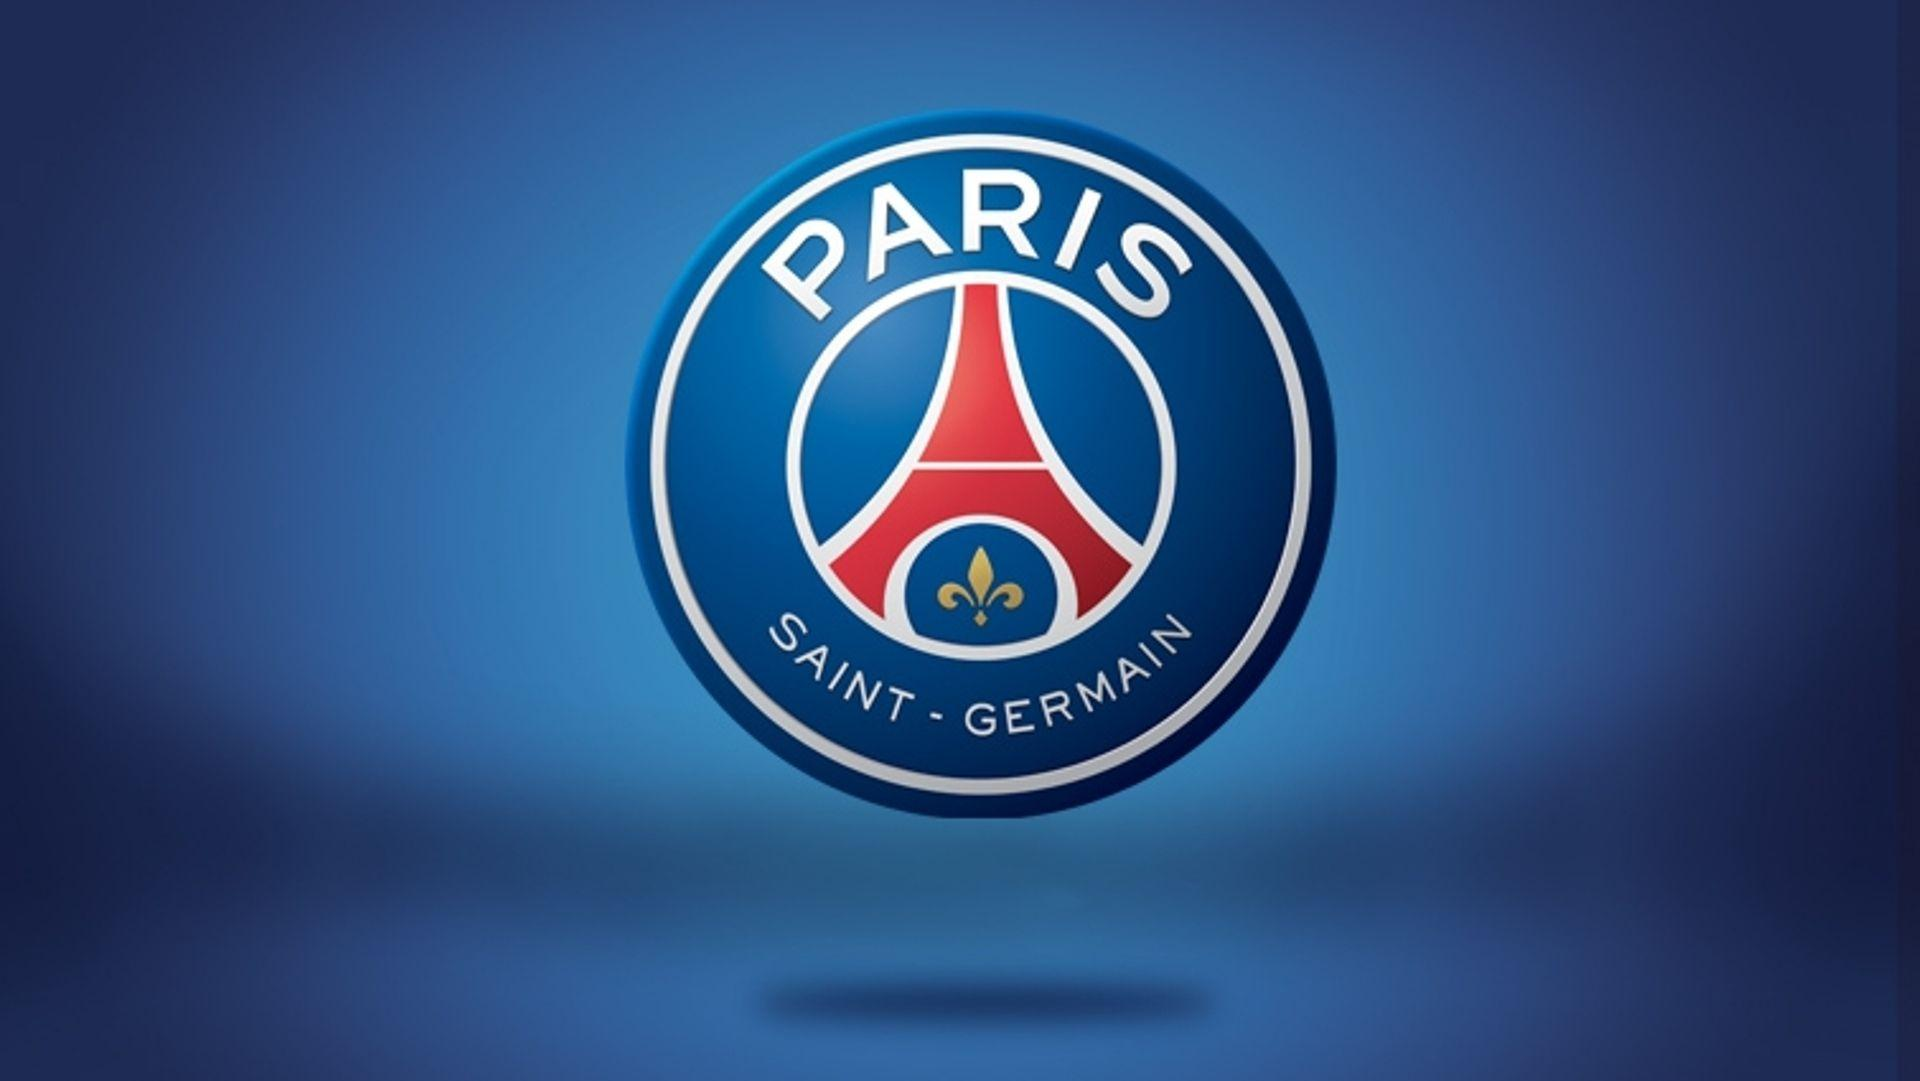 PSG Logo Blue Wallpaper HD Desktop Free Images #6704 Wallpaper ...